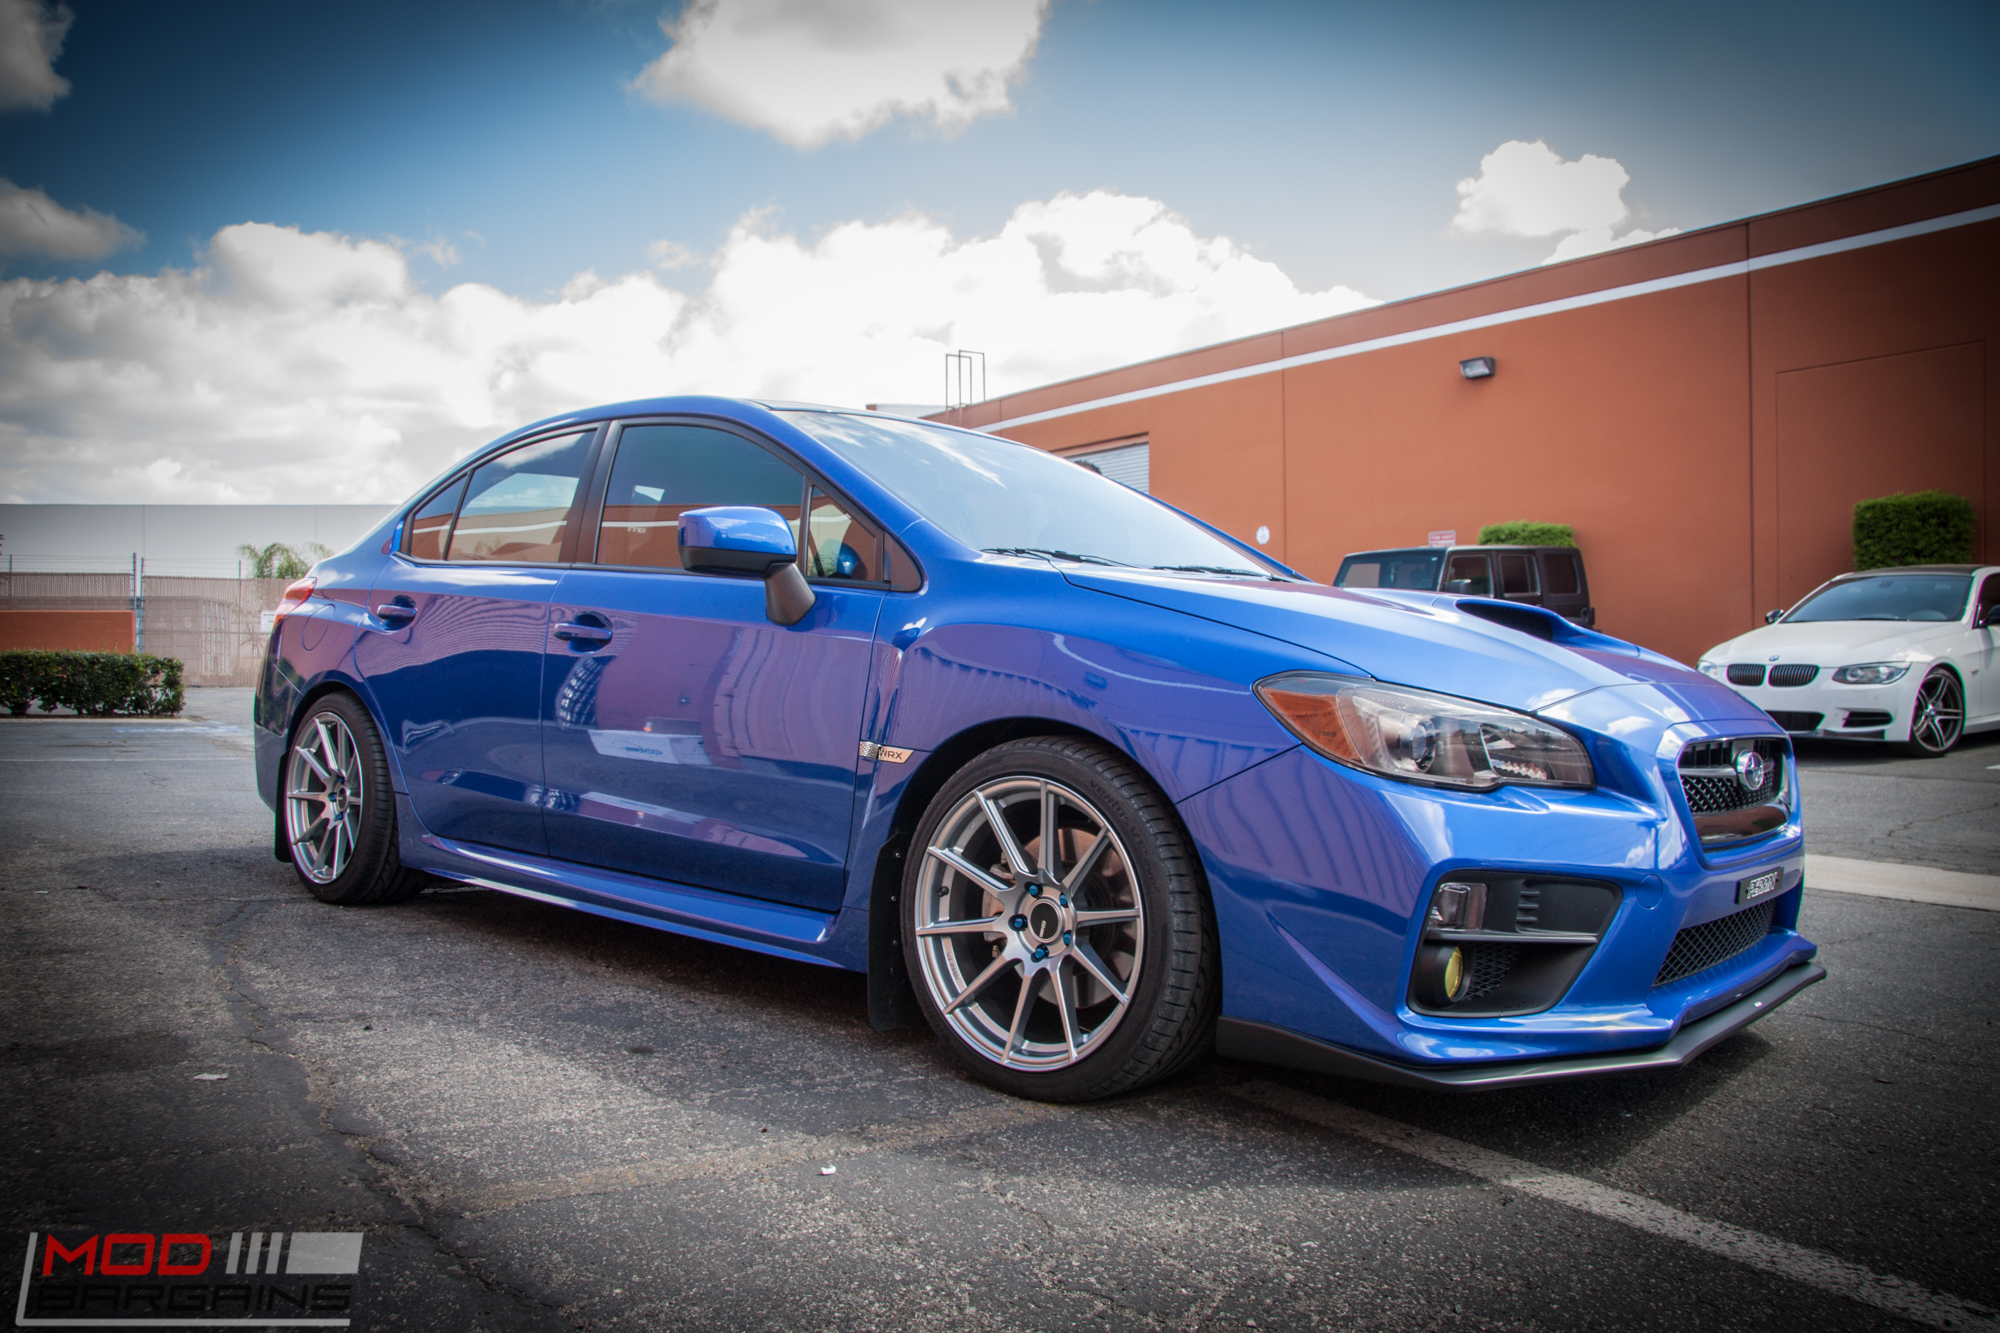 Ford Focus Hatchback Rims >> 2015 Subaru WRX on Swift Springs gets Enkei TS10s @ ModAuto